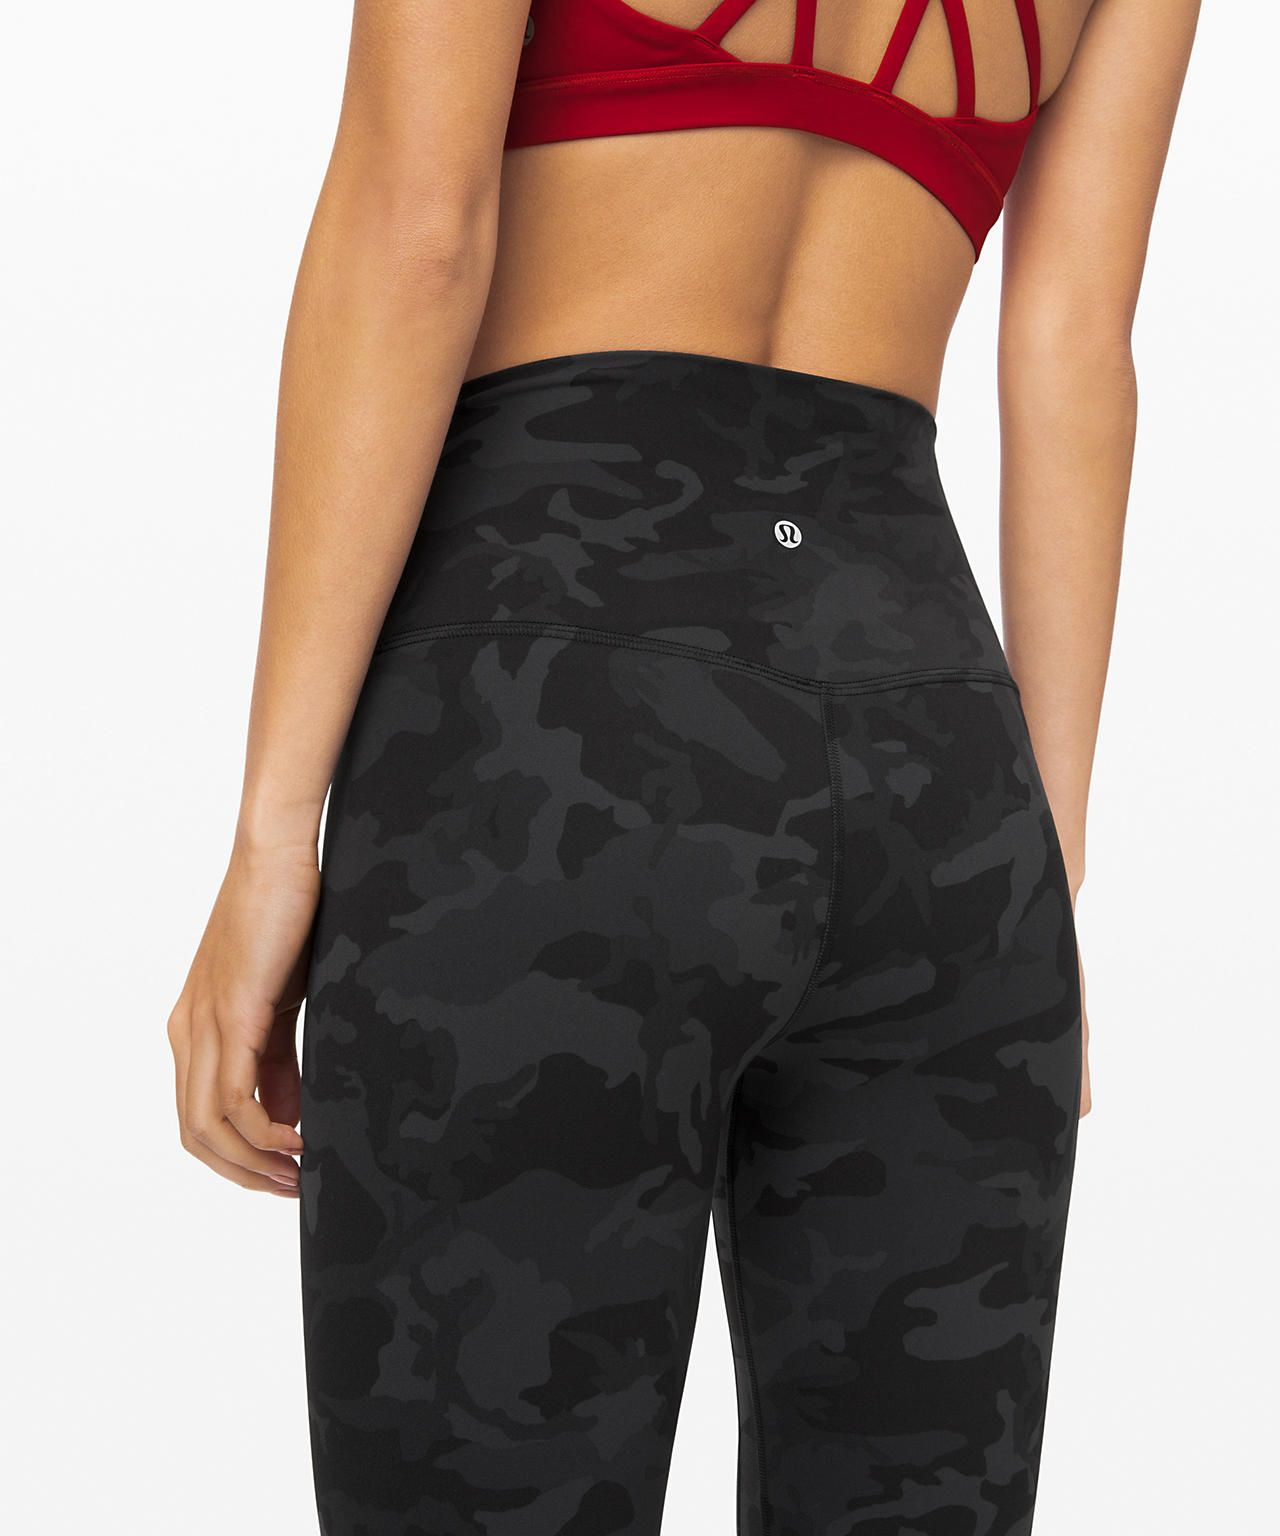 Align Pant 28 Women S Pants Lululemon Outfits Running Clothes Women Pants For Women